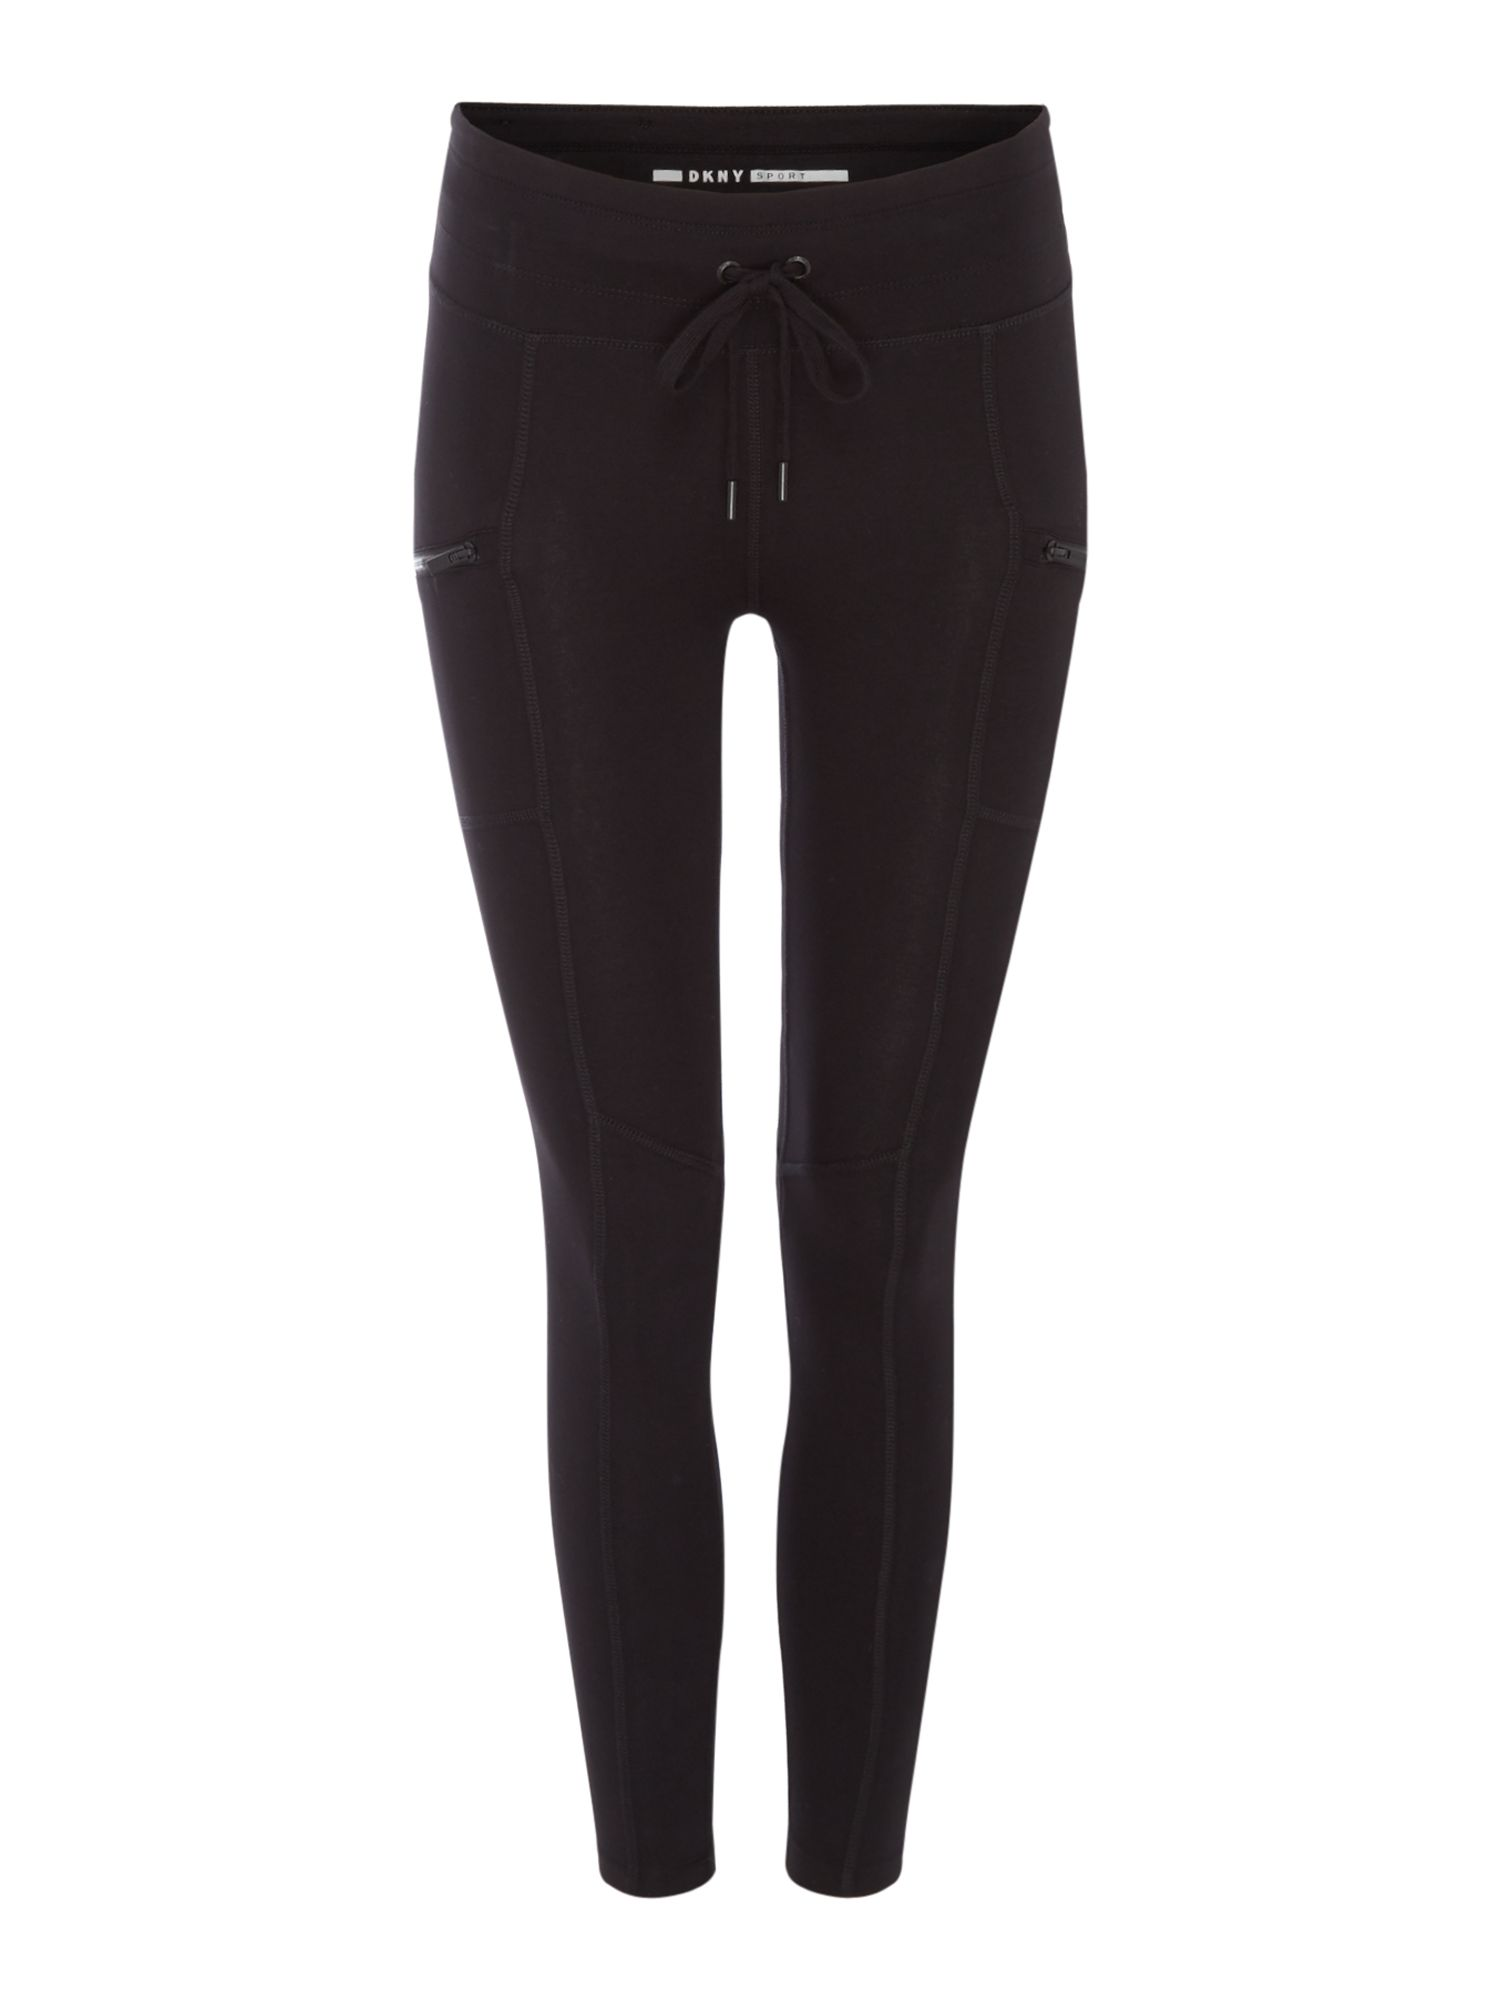 DKNY 78 JERSEY LEGGING WITH POCKETS, Black